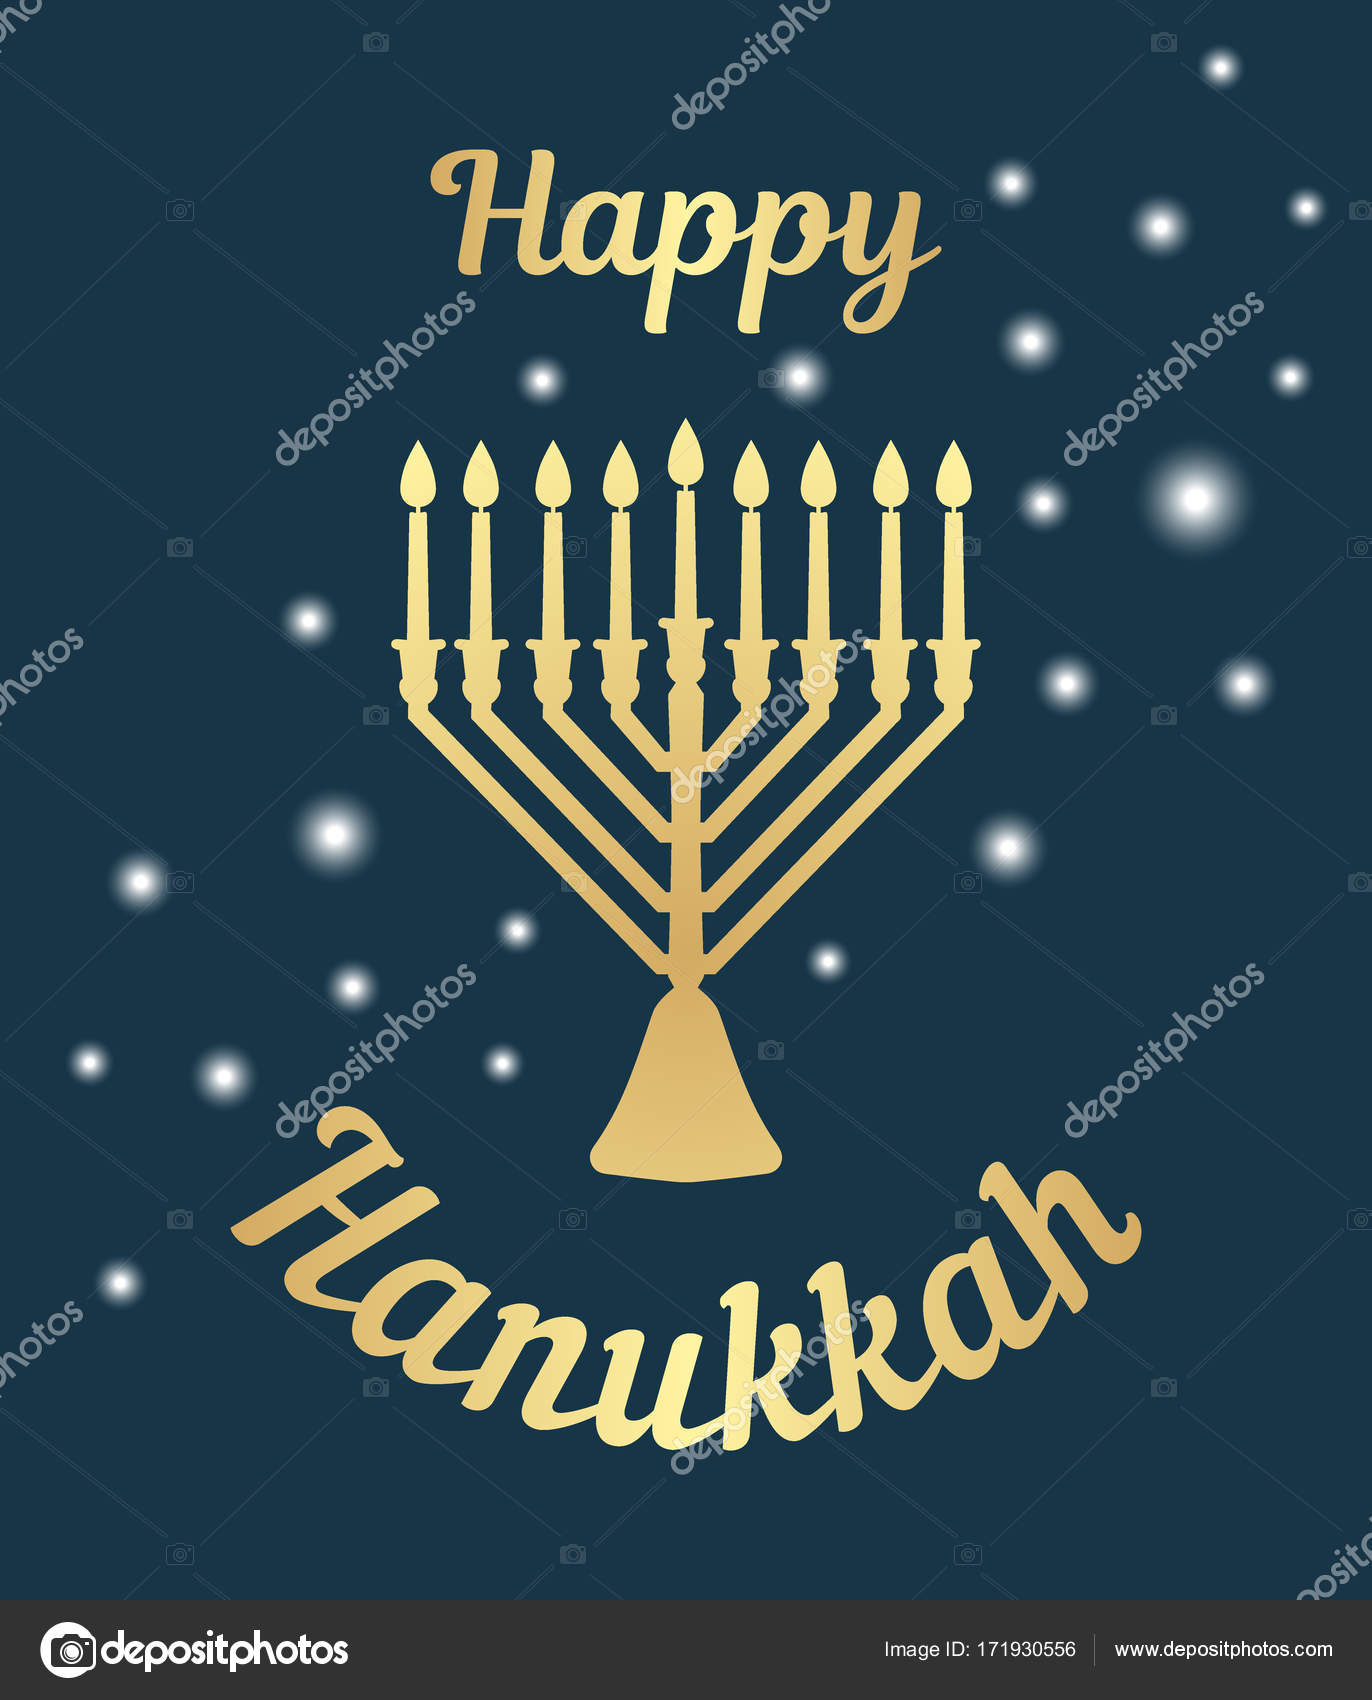 A Traditional Menorah For The Festival Of Jewish Chanukah Greeting